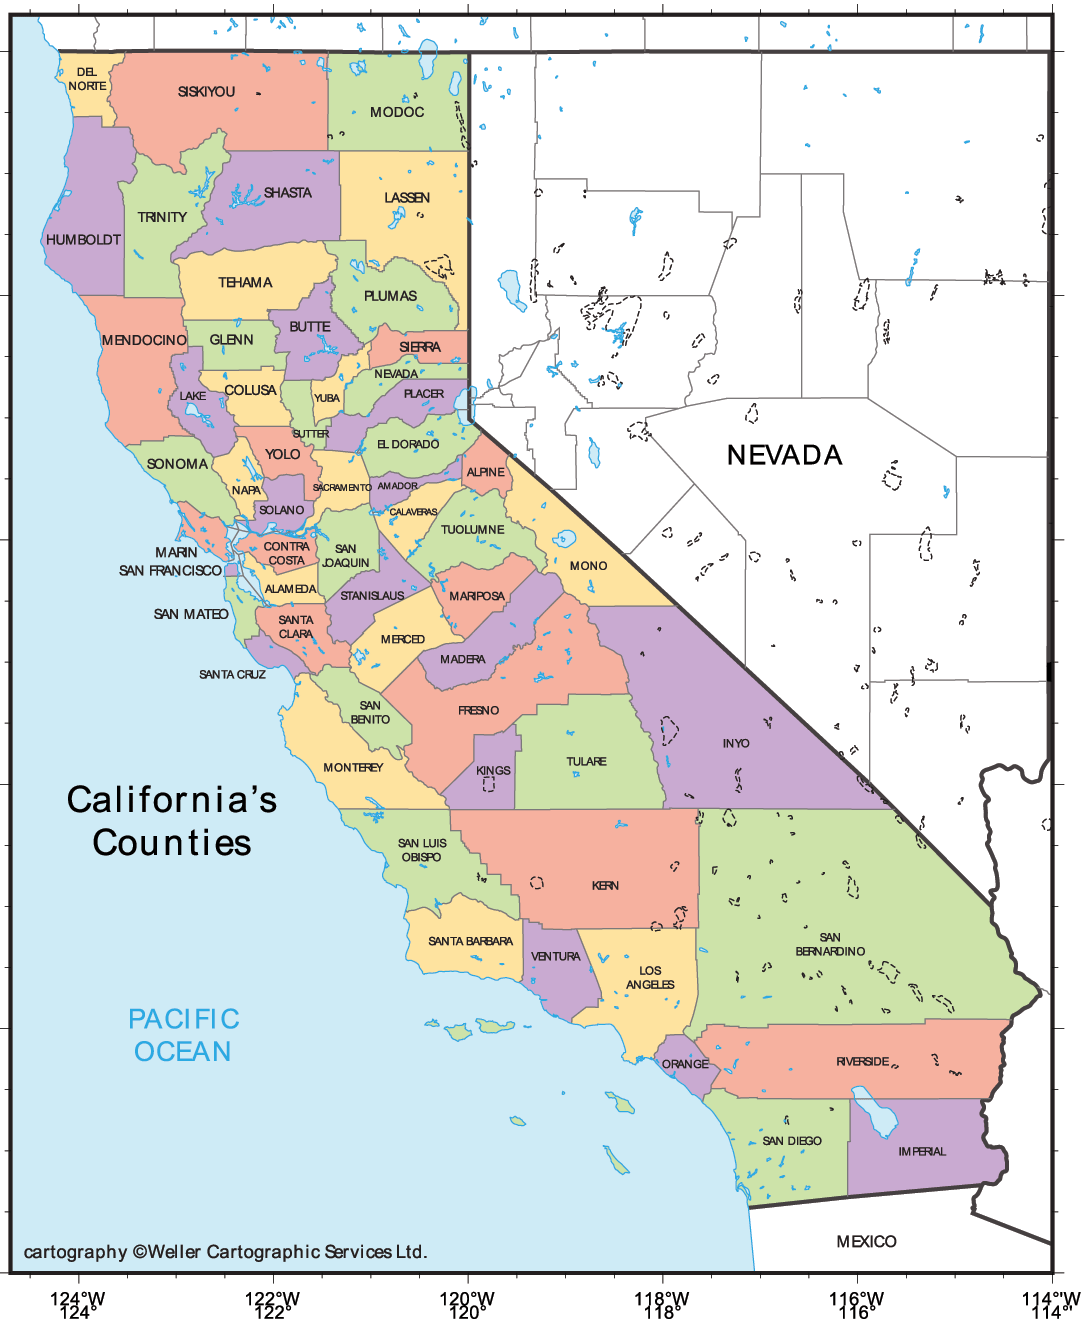 Map Of California Towns And Cities.California Cities Map Mapsof Net